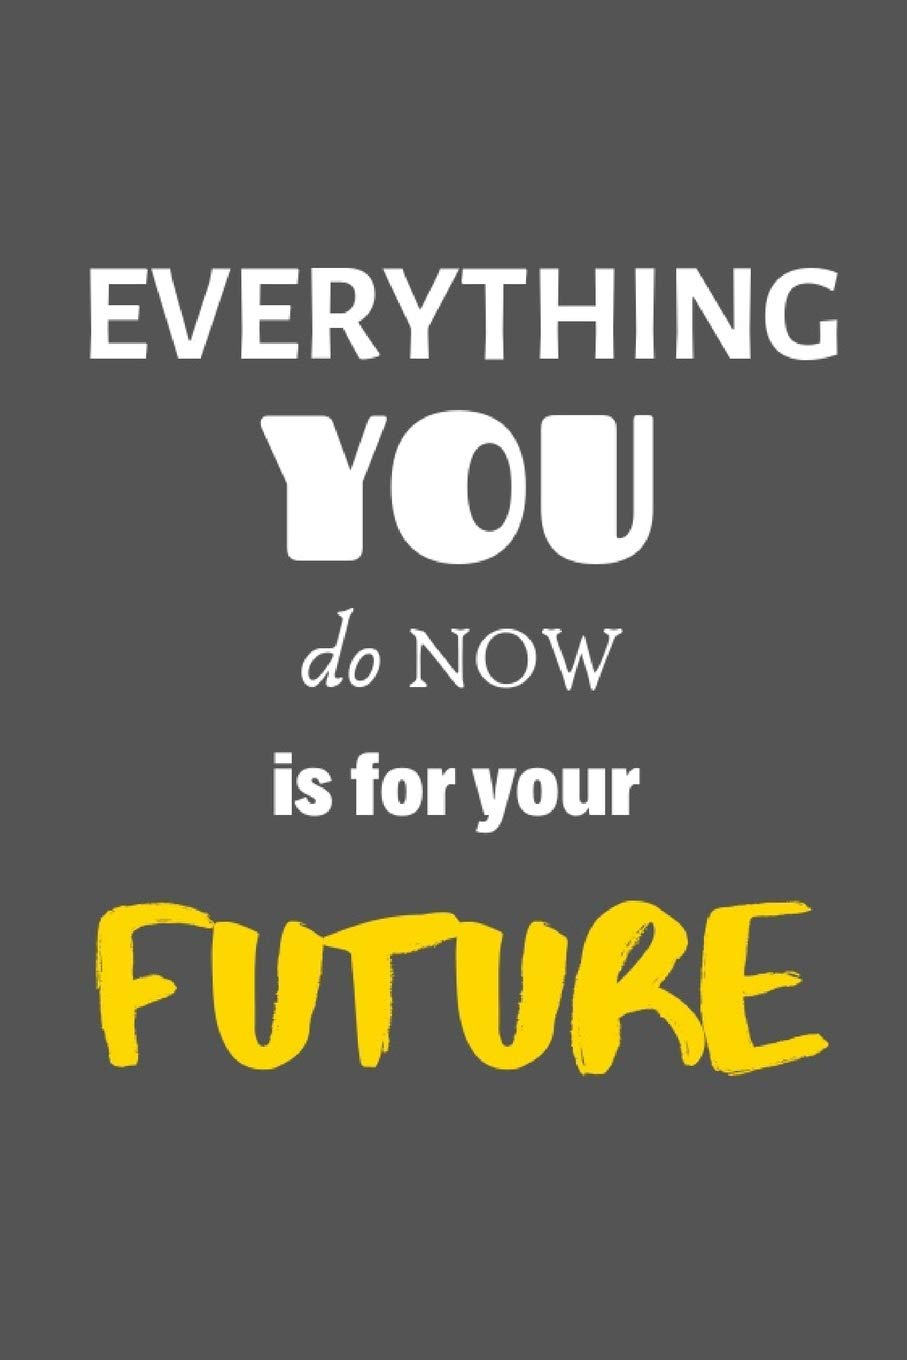 Everything You Do Now Is For Your Future Self Daily Inspirational Motivational Quote Blank Lined Journal Notebook 6x9 120 Pages Journals Inspired 9781089414292 Amazon Com Books